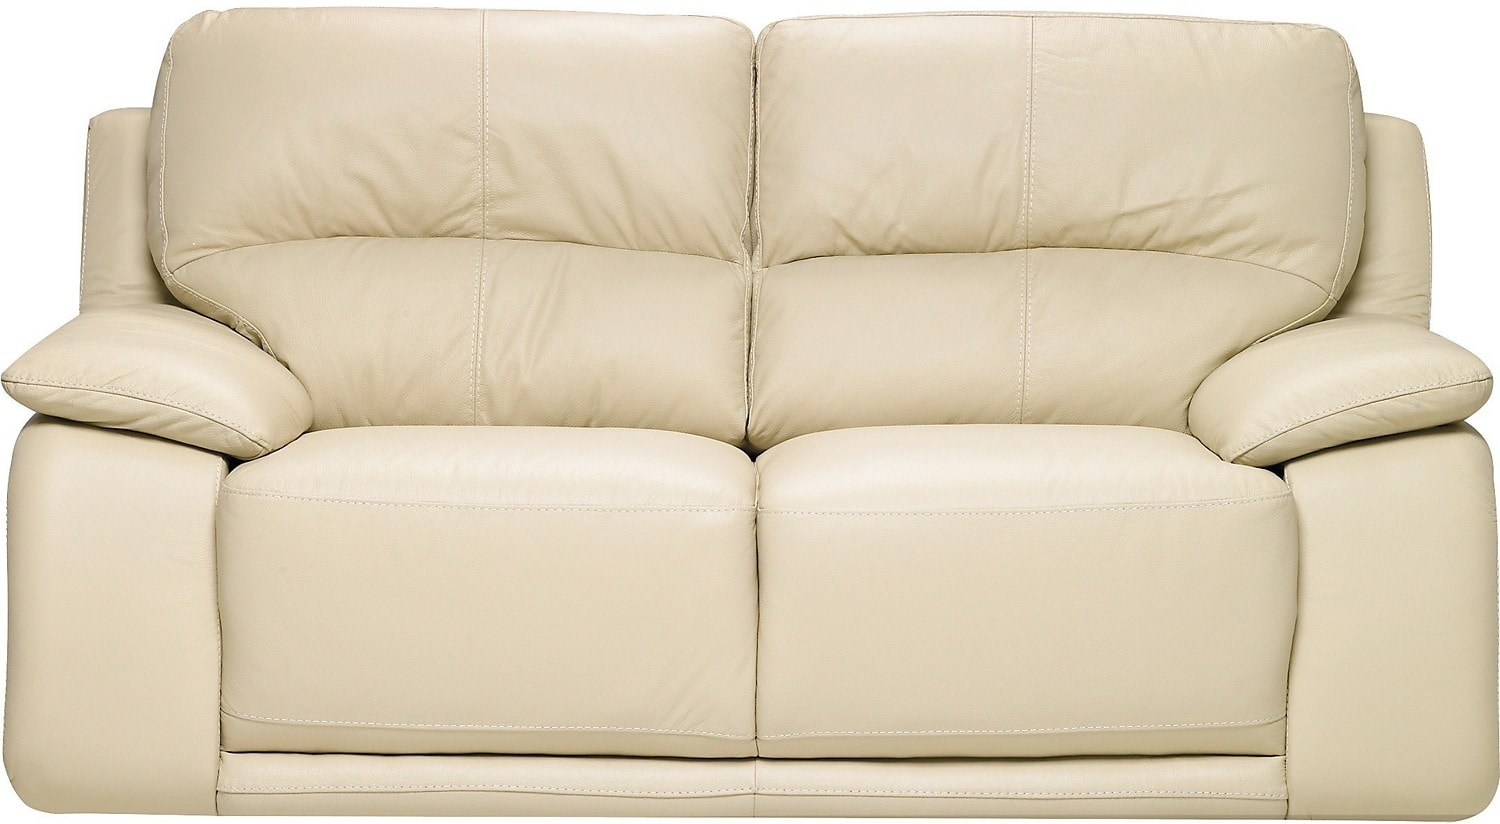 Chateau D Ax 100 Genuine Leather Loveseat Ivory United Furniture Warehouse